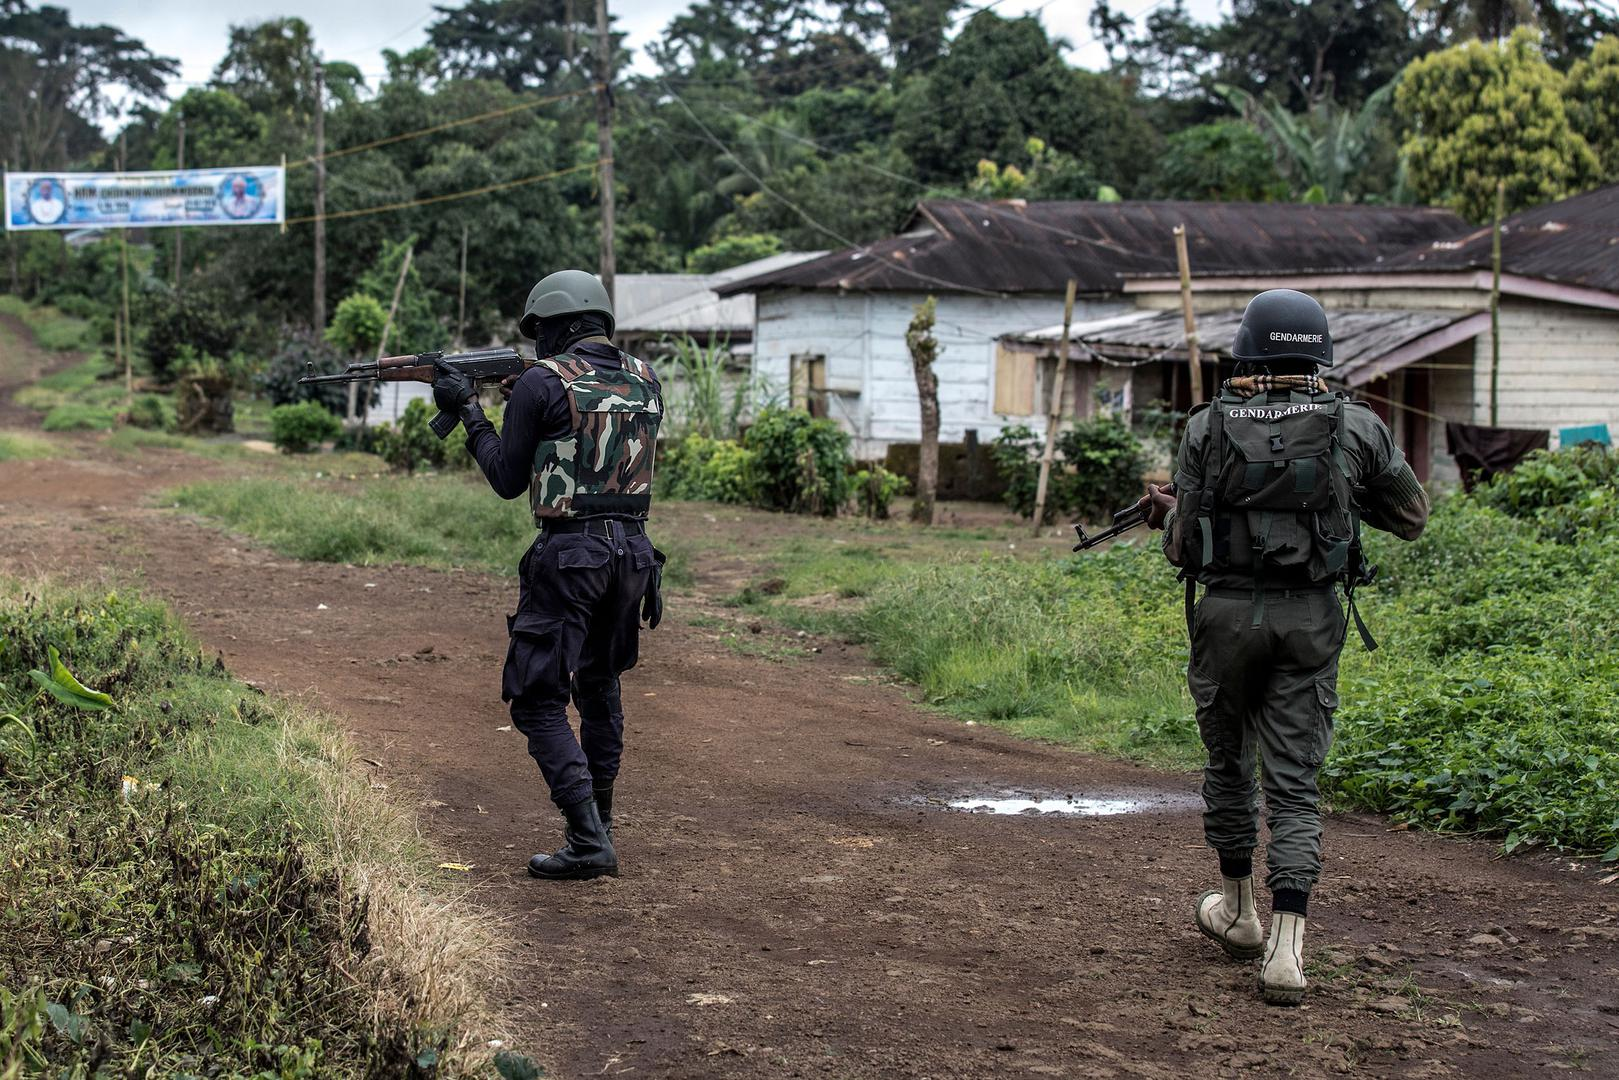 Security forces patrolling Muyuka, a town in the South West Region of Cameroon